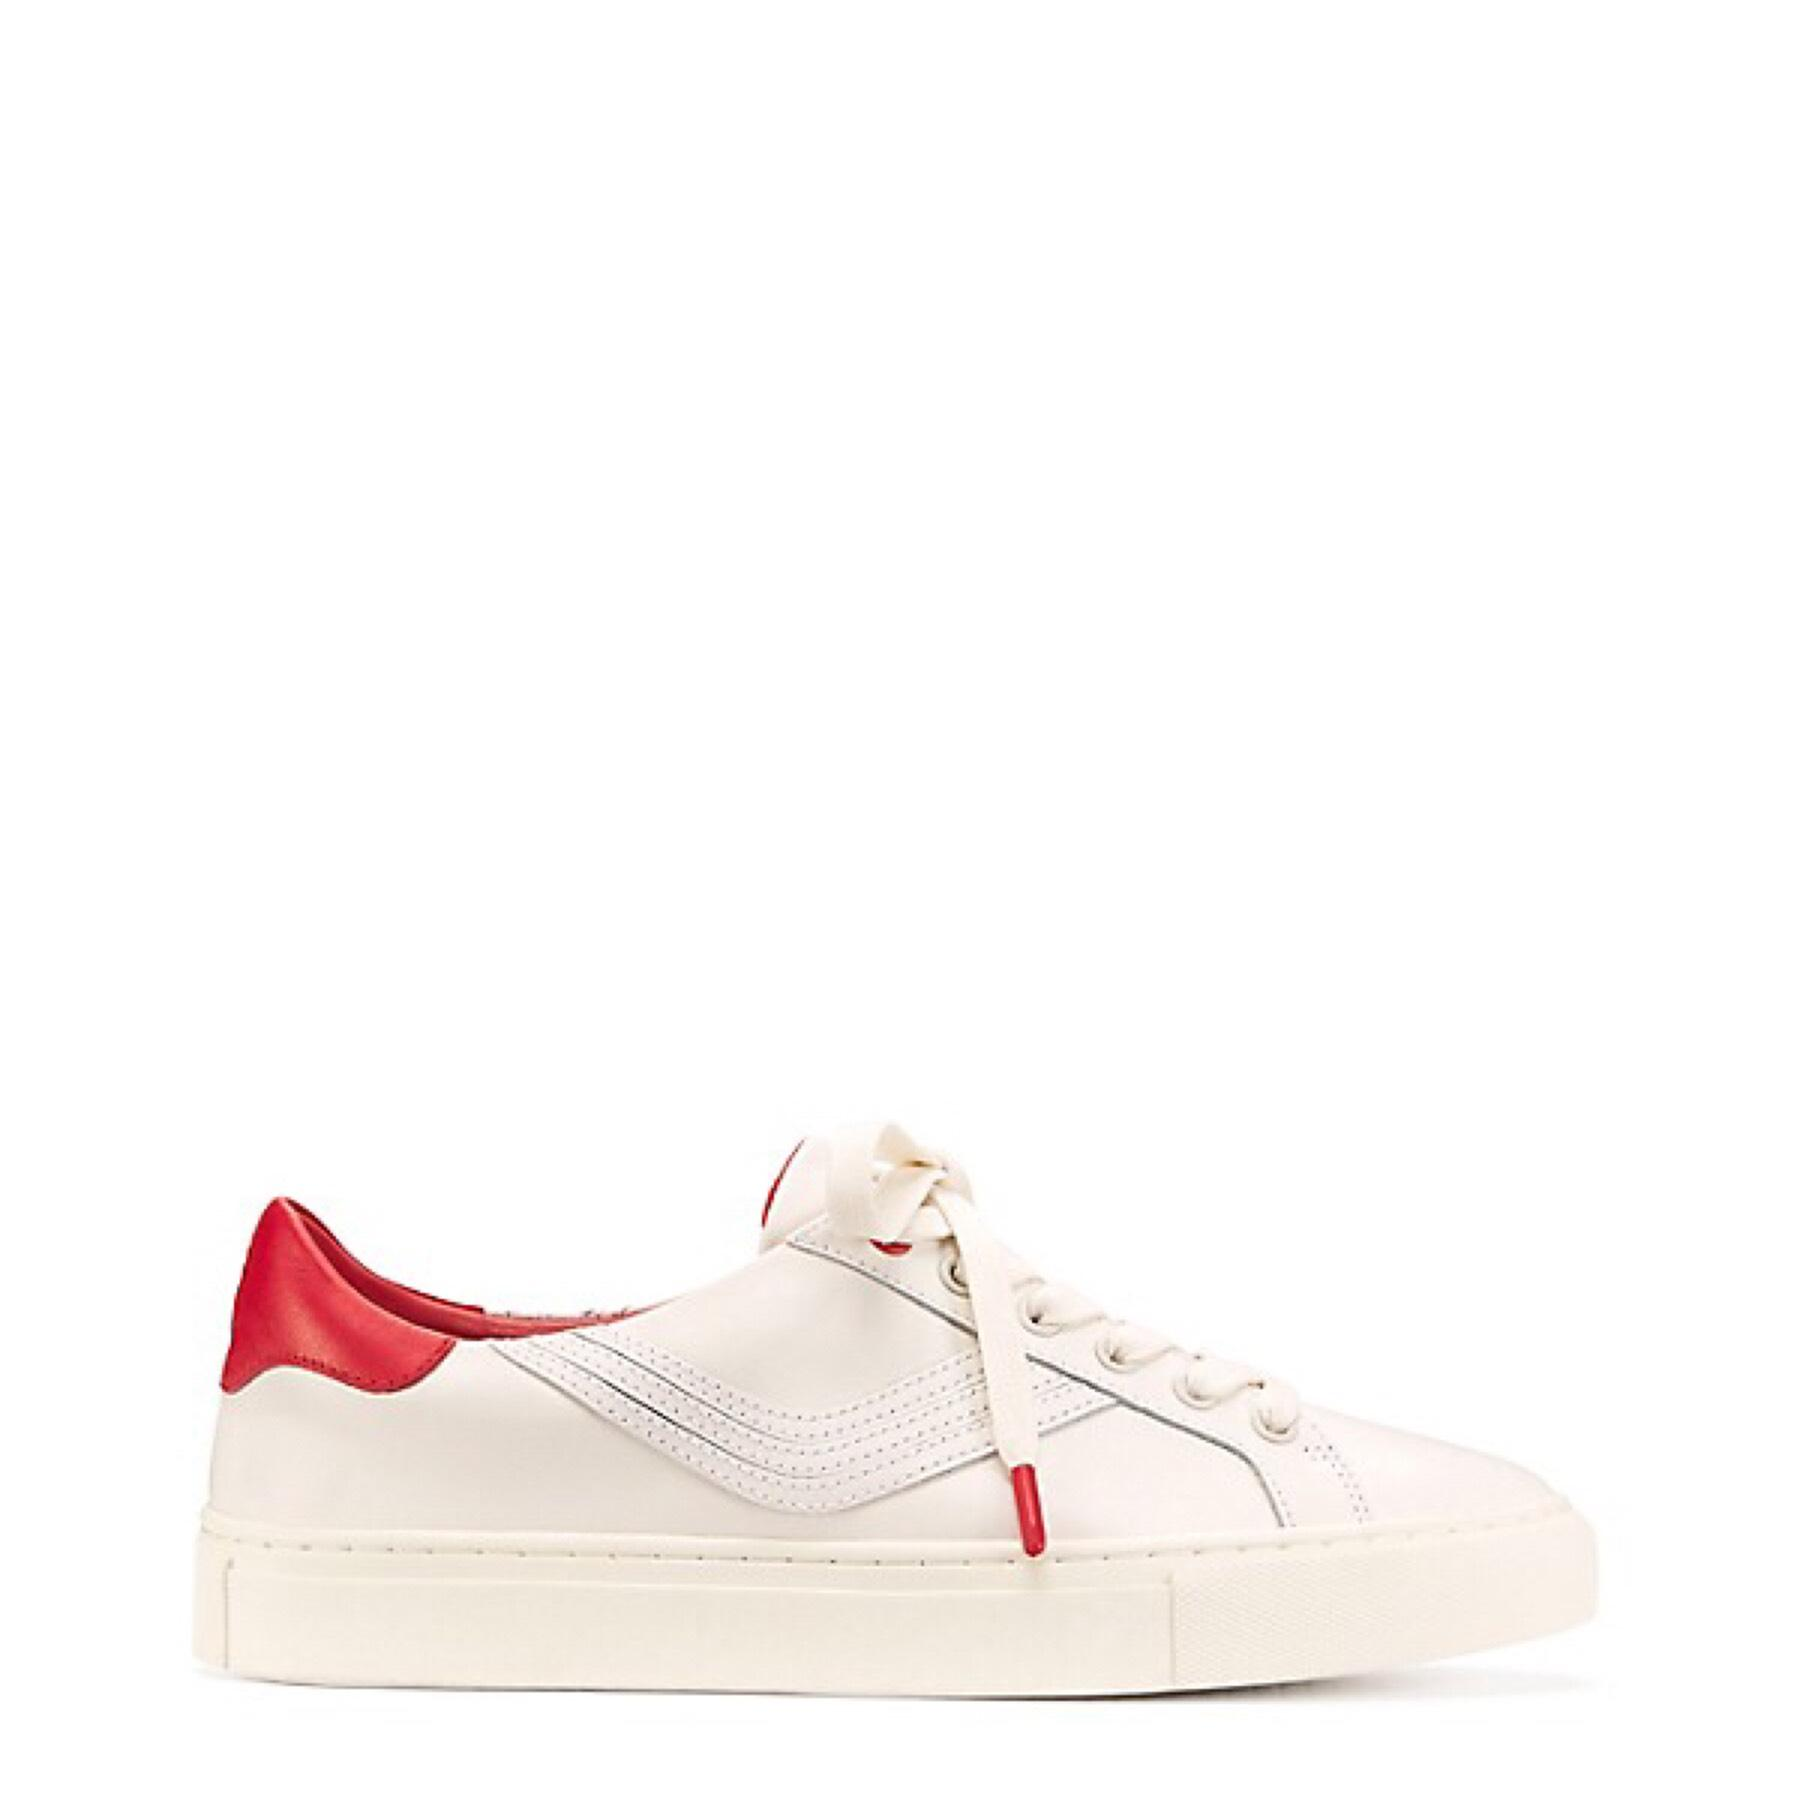 Cheap Price Outlet Sale Get Authentic Striped Leather Sneakers - White Tory Burch New 1b49j